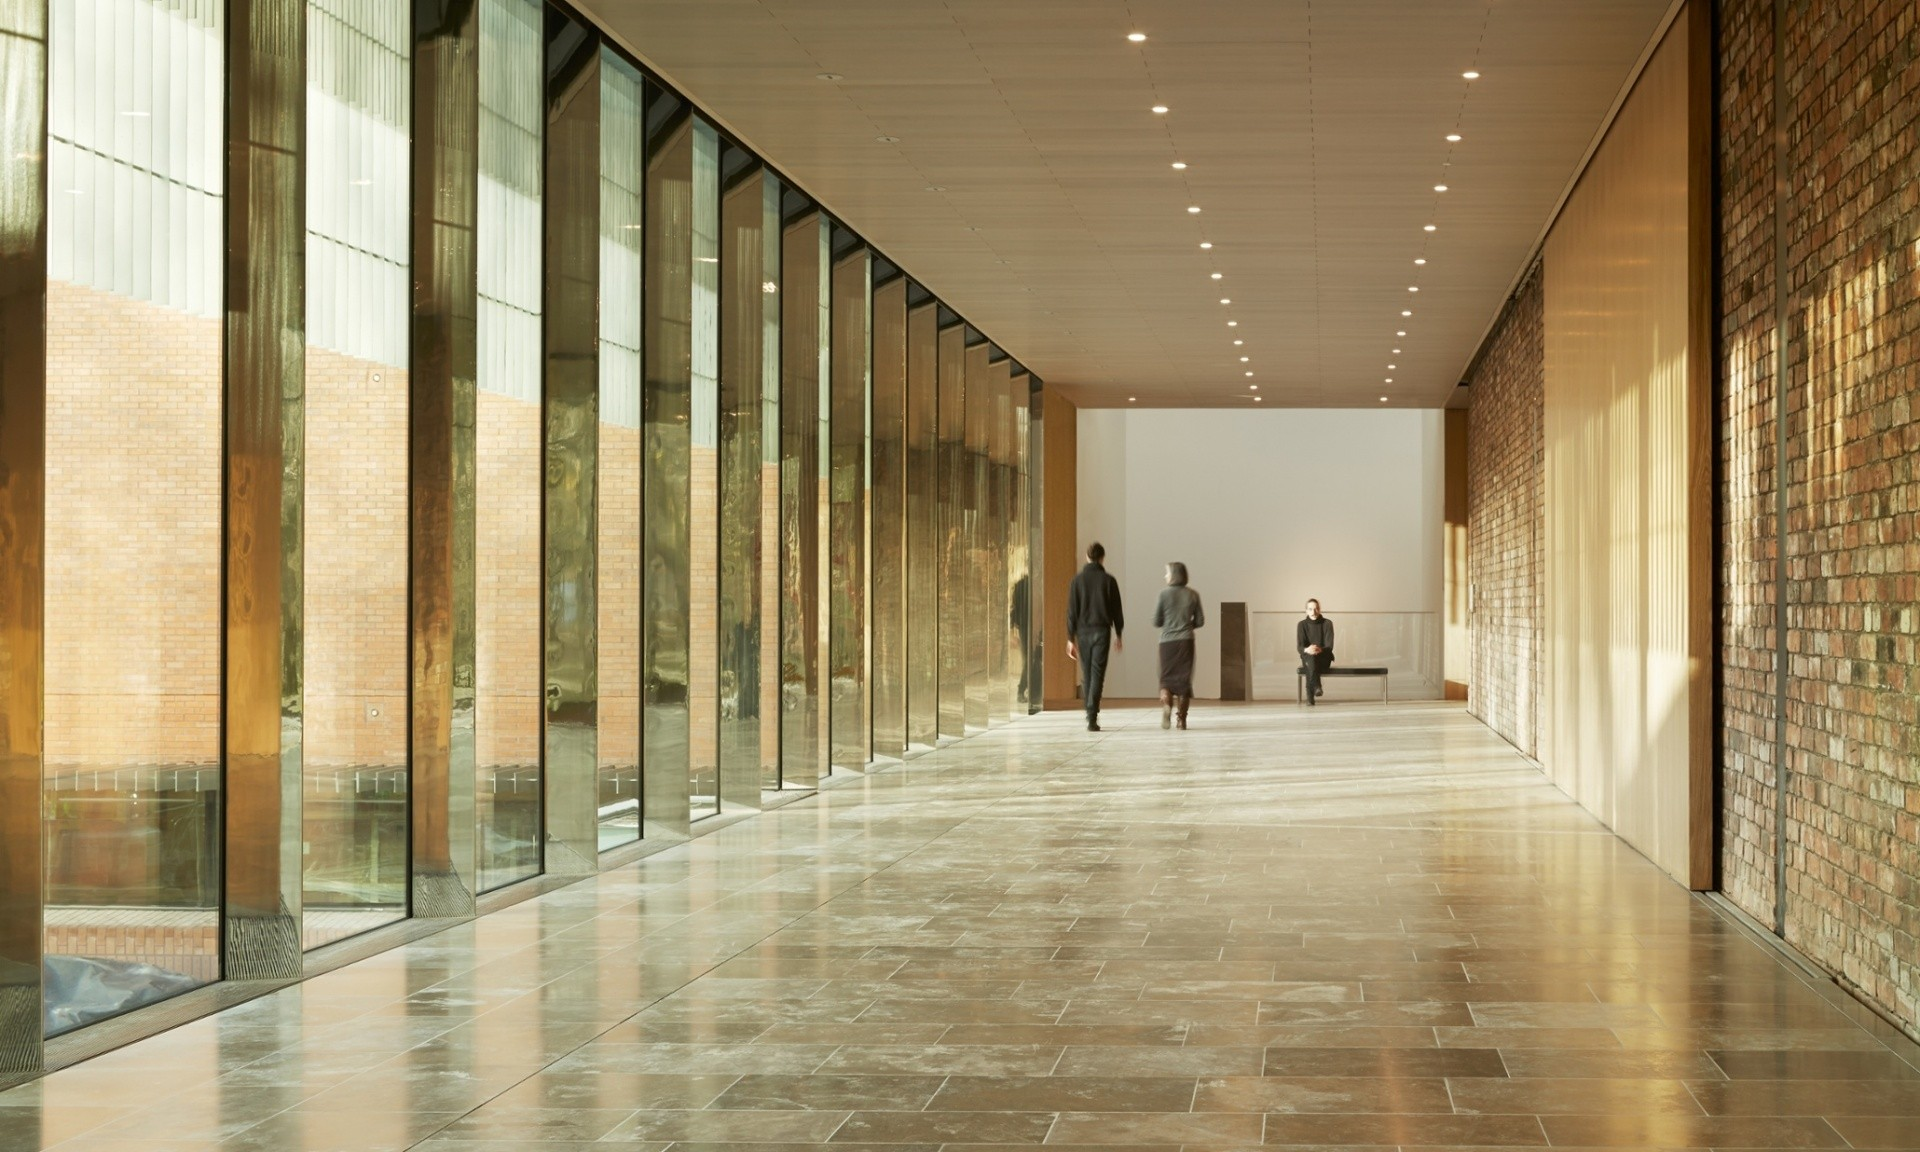 Rowan Moore On MUMA's Extension To Manchester's Whitworth Art Gallery, The sun drenched interior promenade. Image Courtesy of The Whitworth